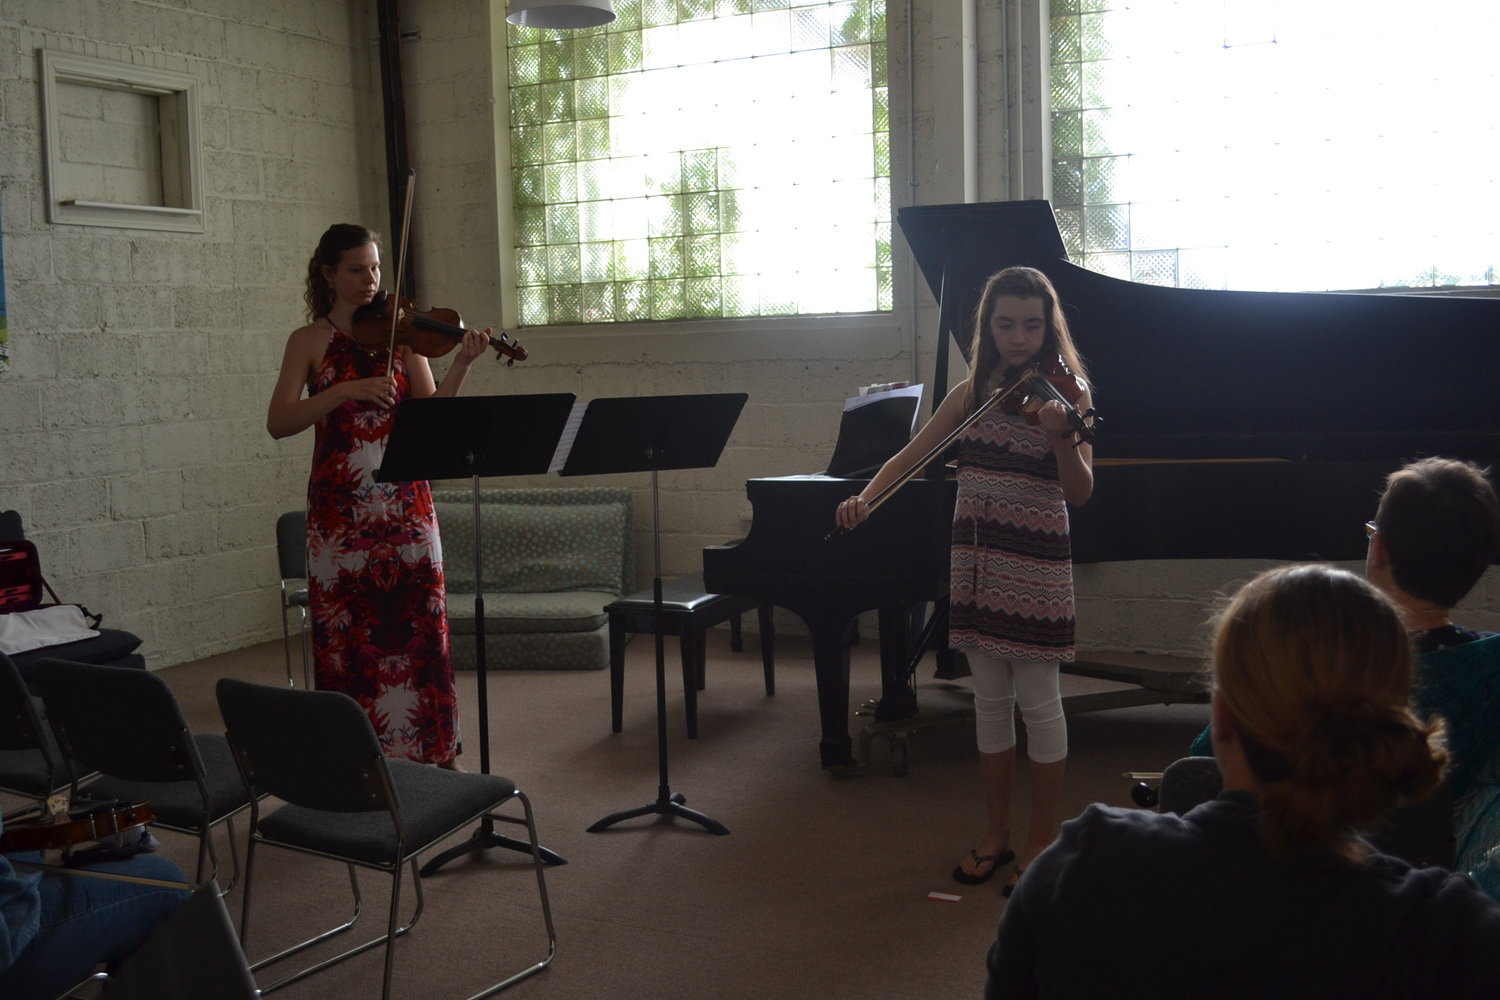 Ava Heinricher and Ms. Elisabeth perform together